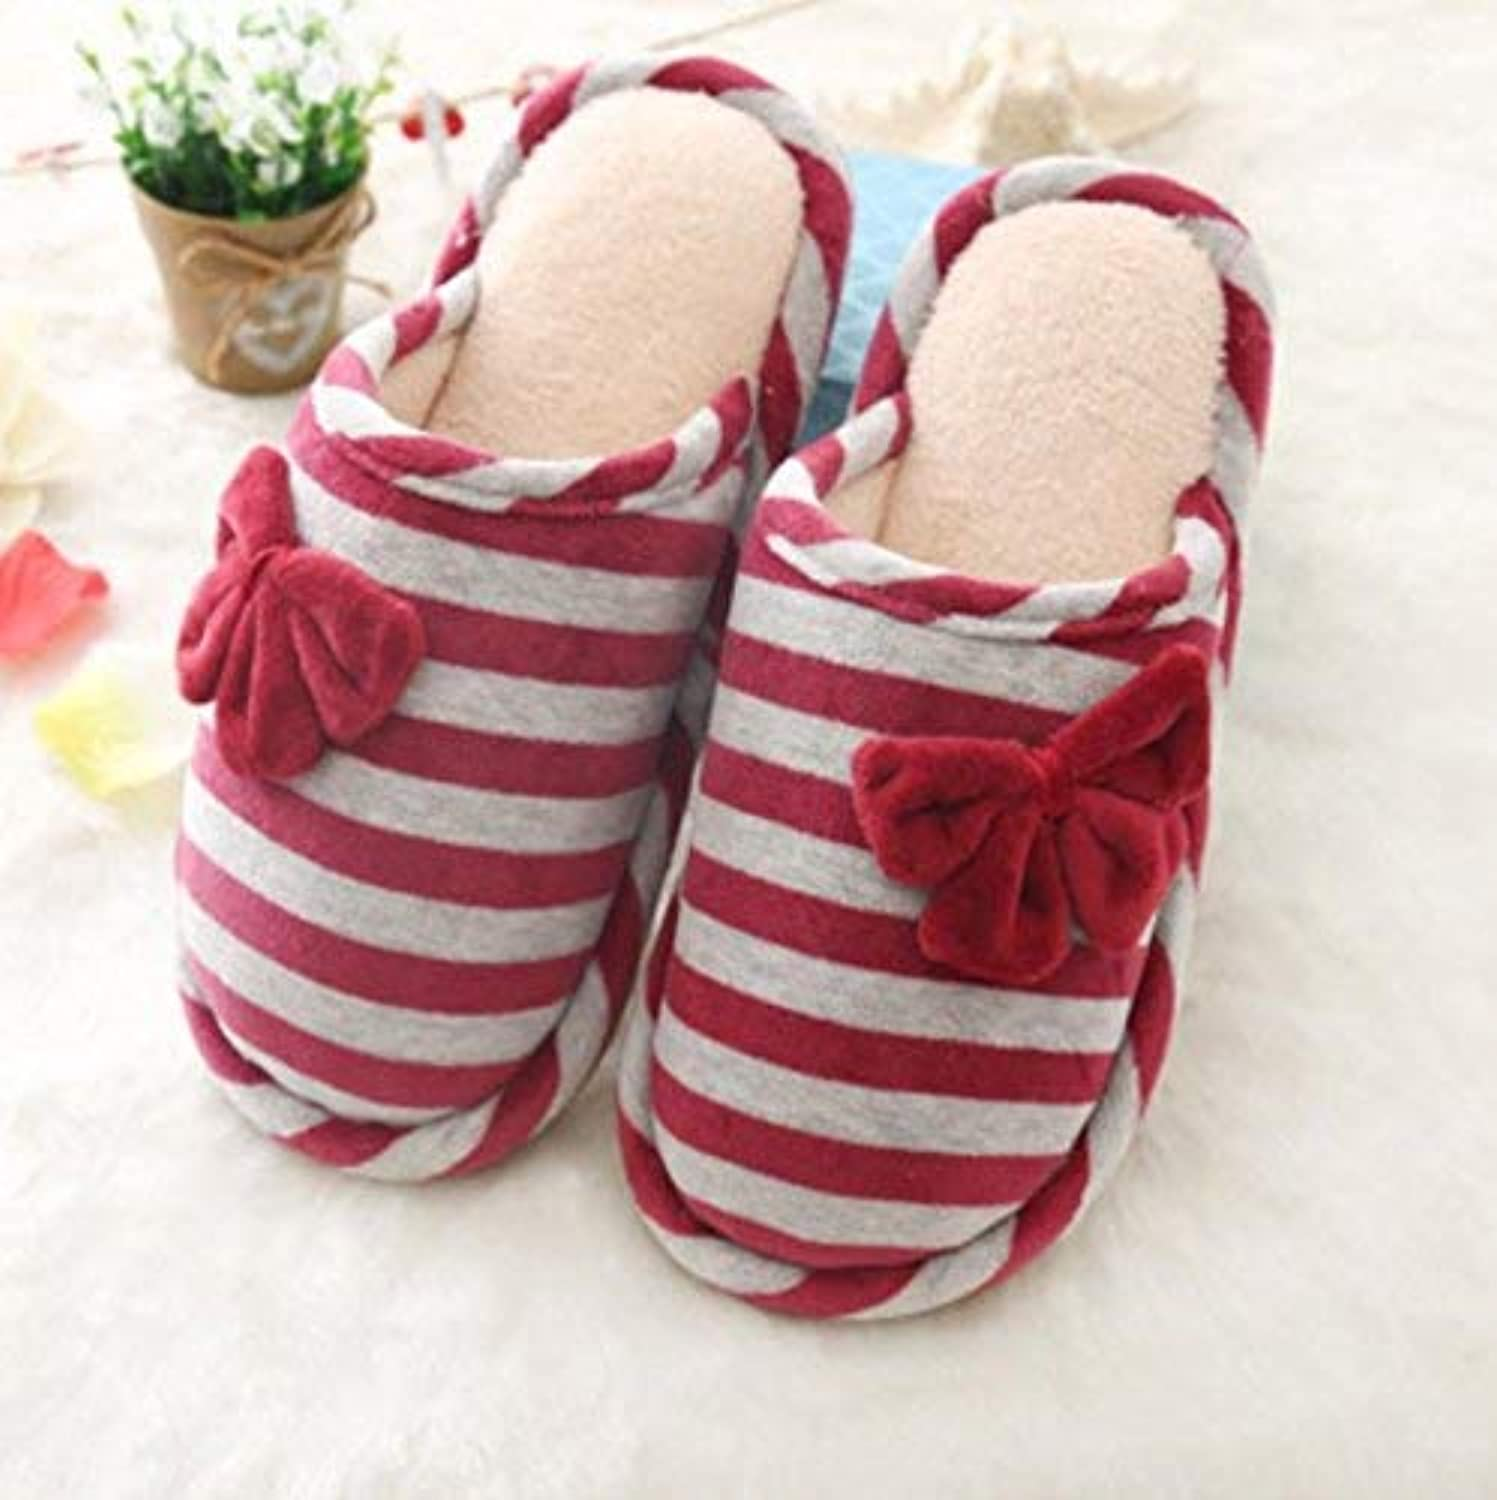 Lady Slippers Women's Home Slippers Indoor Non-Slip Warm Cotton Casual Slippers Bow Decoration Stripe Pattern Patchwork color Flip Flops